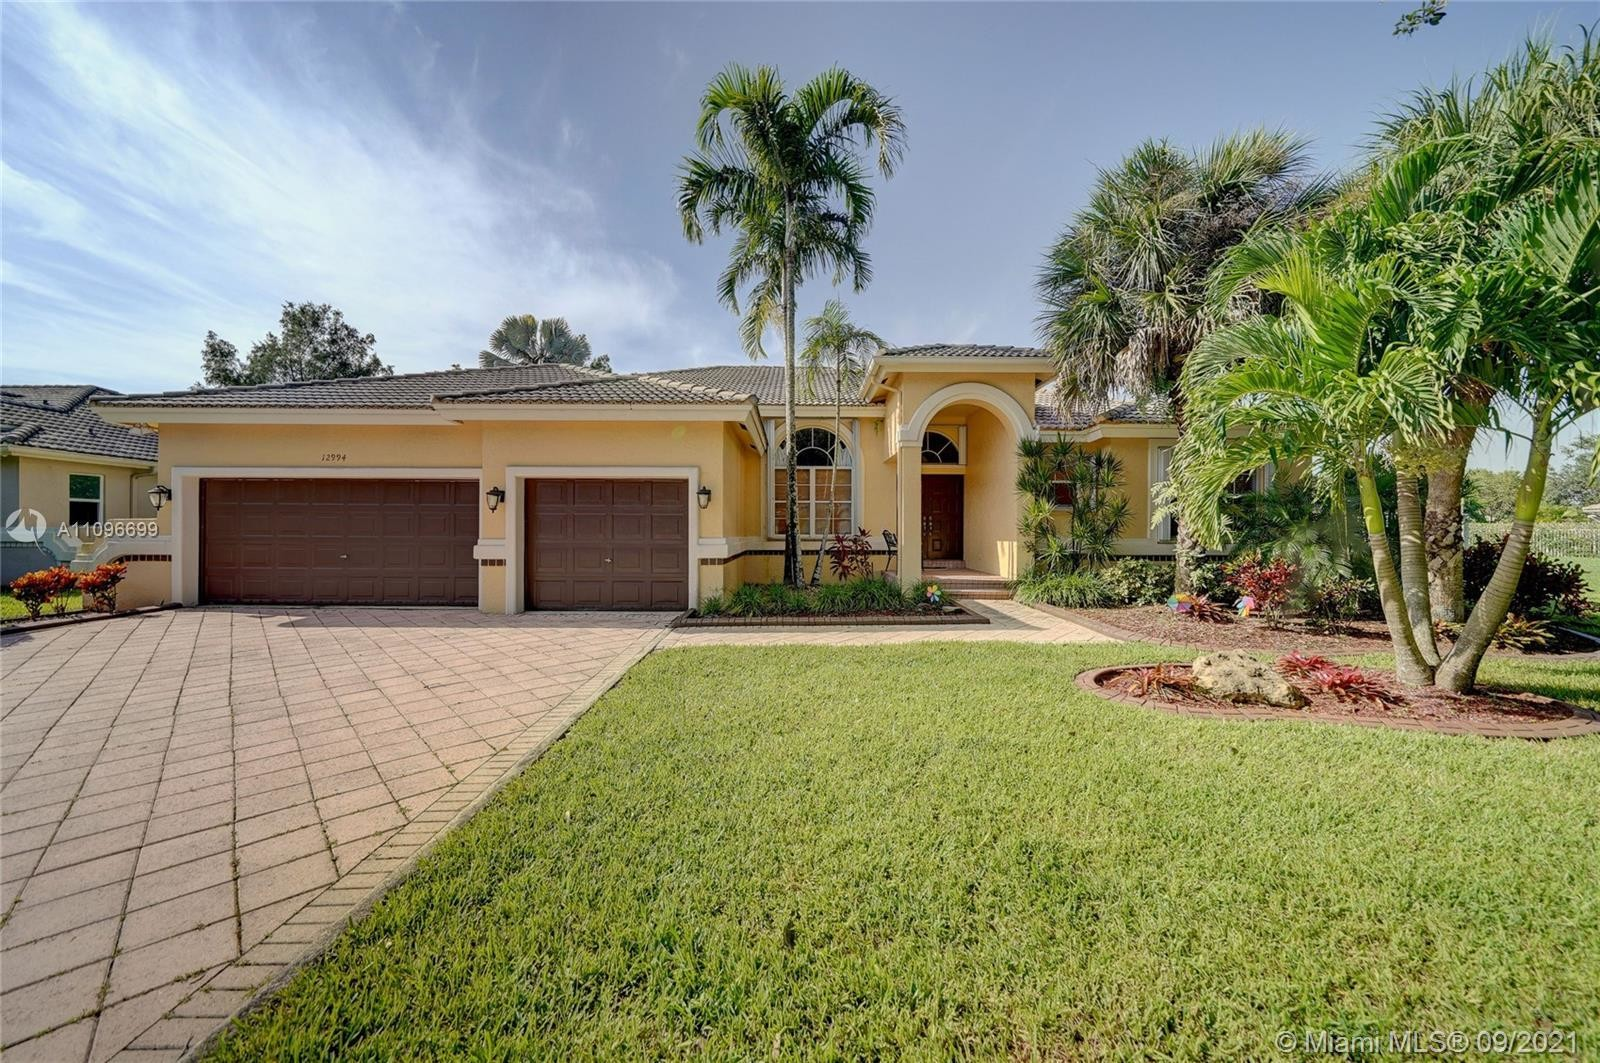 1-Story House In Cooper City